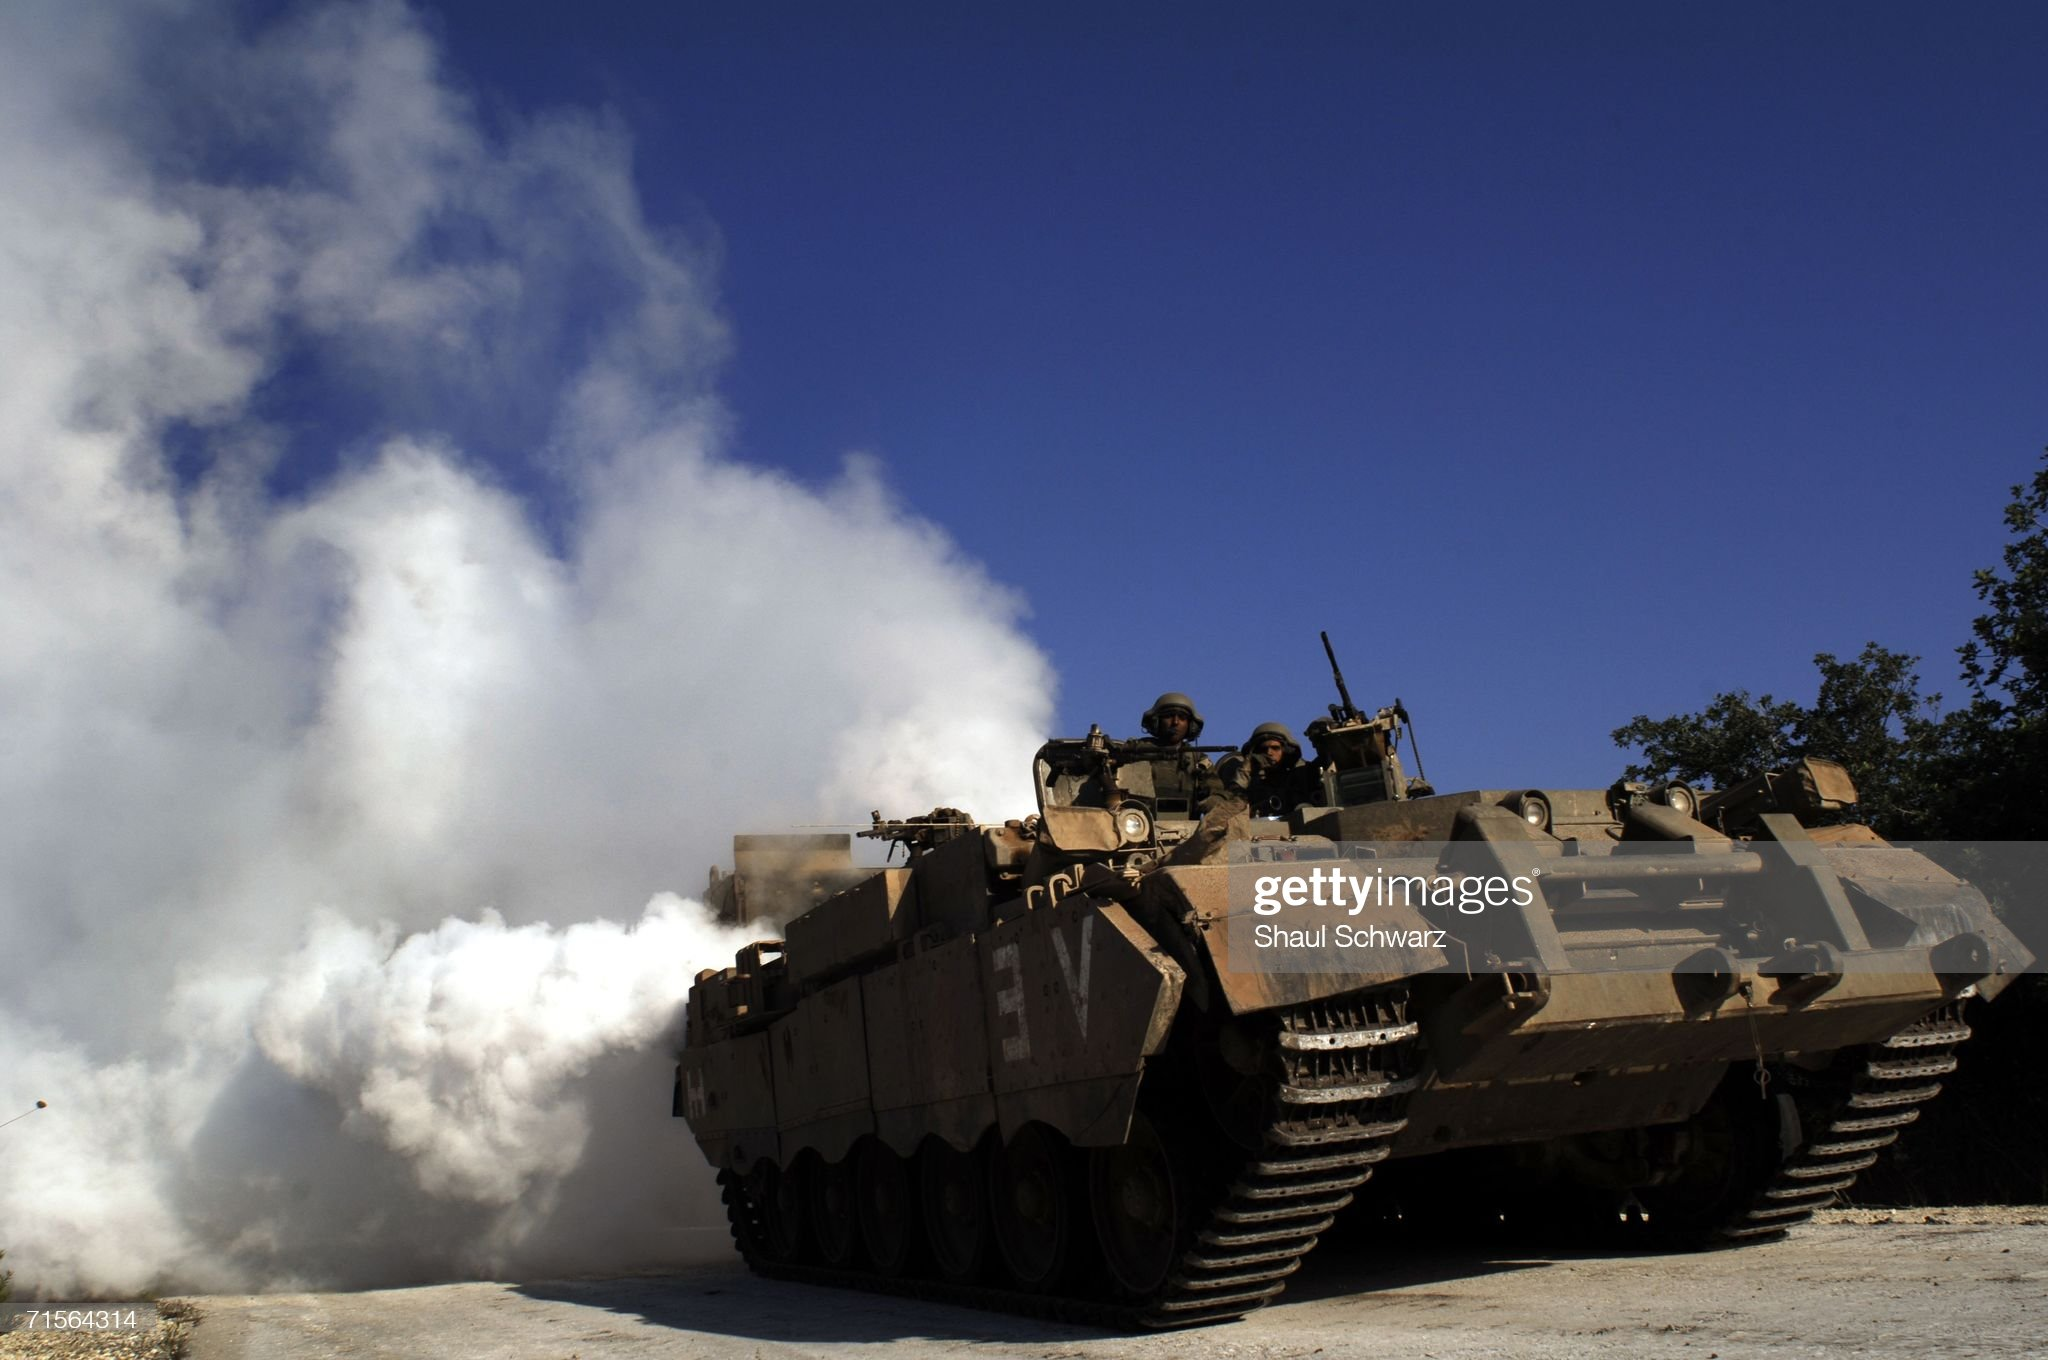 https://media.gettyimages.com/photos/an-israeli-tank-uses-smoke-grenades-to-protect-itself-from-anti-tank-picture-id71564314?s=2048x2048